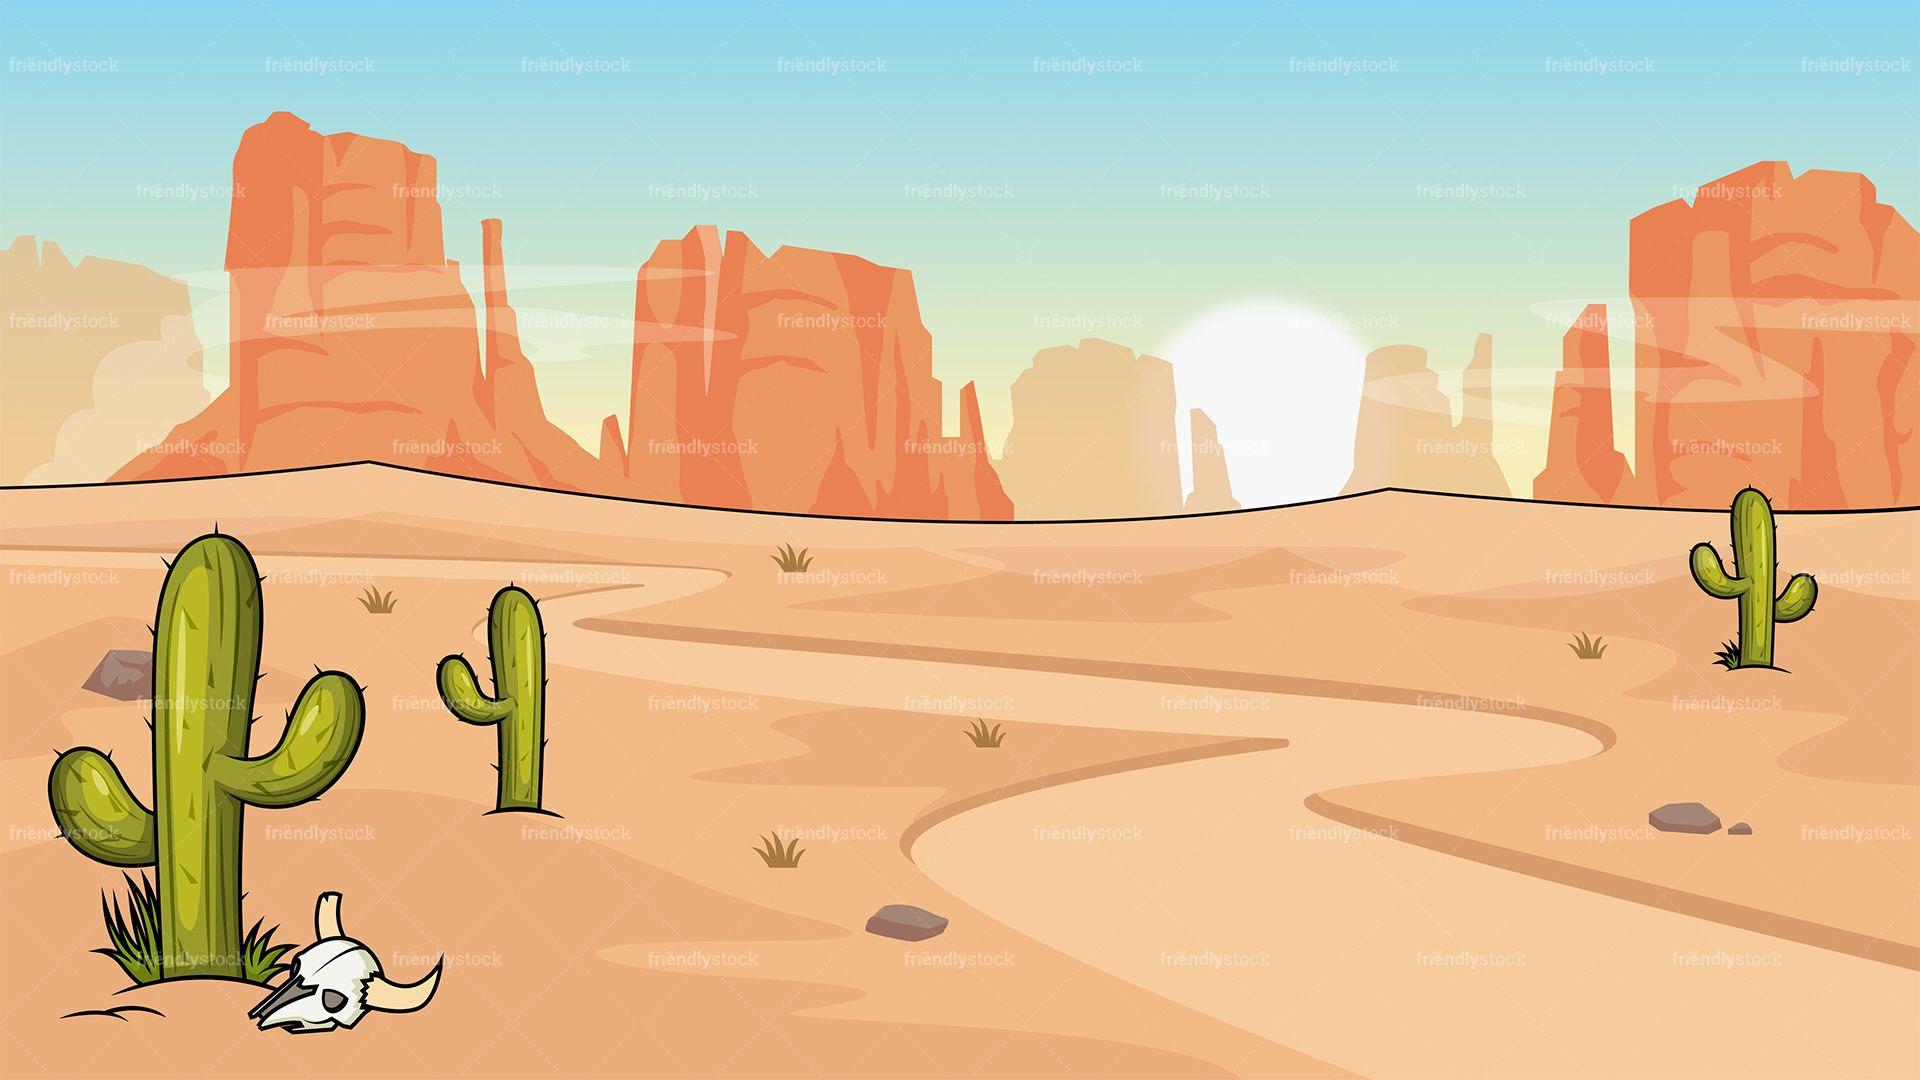 graphic royalty free Wild west desert background. Western scenery clipart